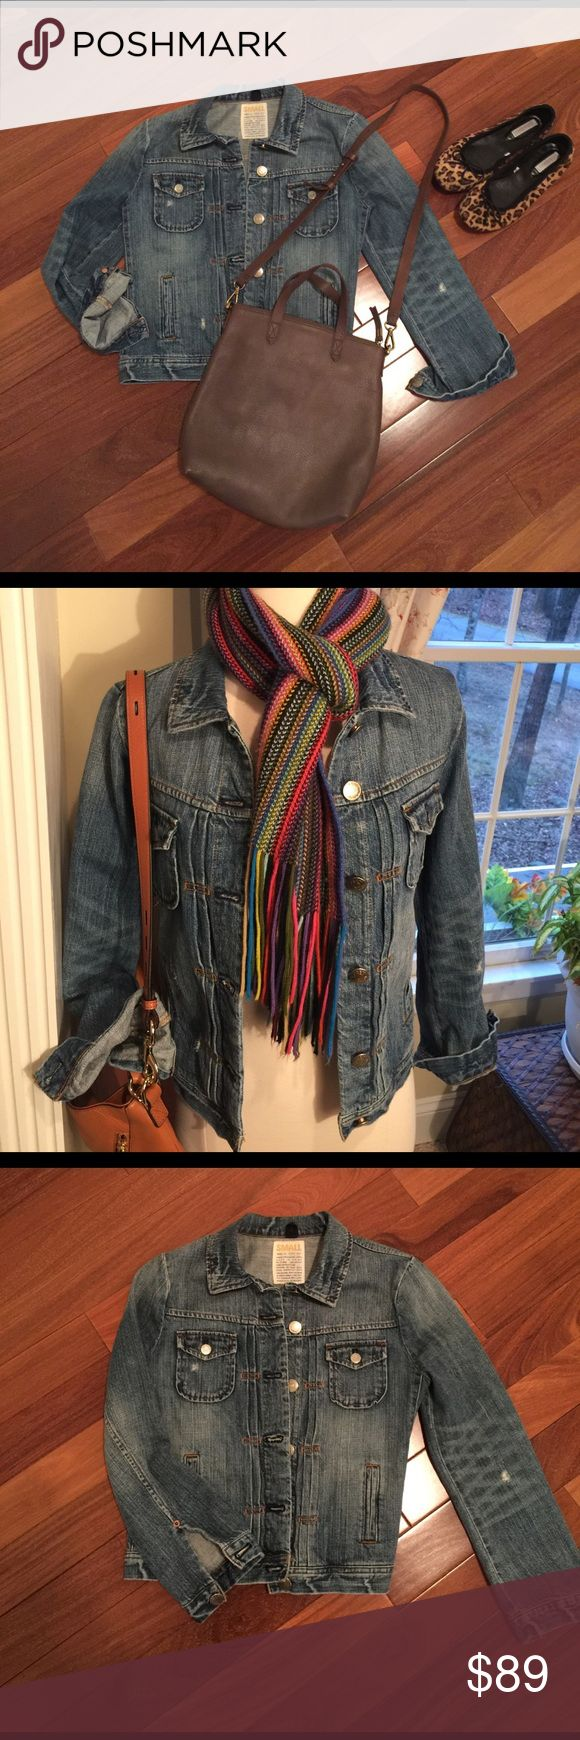 J.Crew Denim Jacket.  NWOT. Size Small. Adorable J.Crew slightly distressed jean jacket.  Never Been Worn.  Super Soft.  Purchased at J.Crew. J. Crew Jackets & Coats Jean Jackets